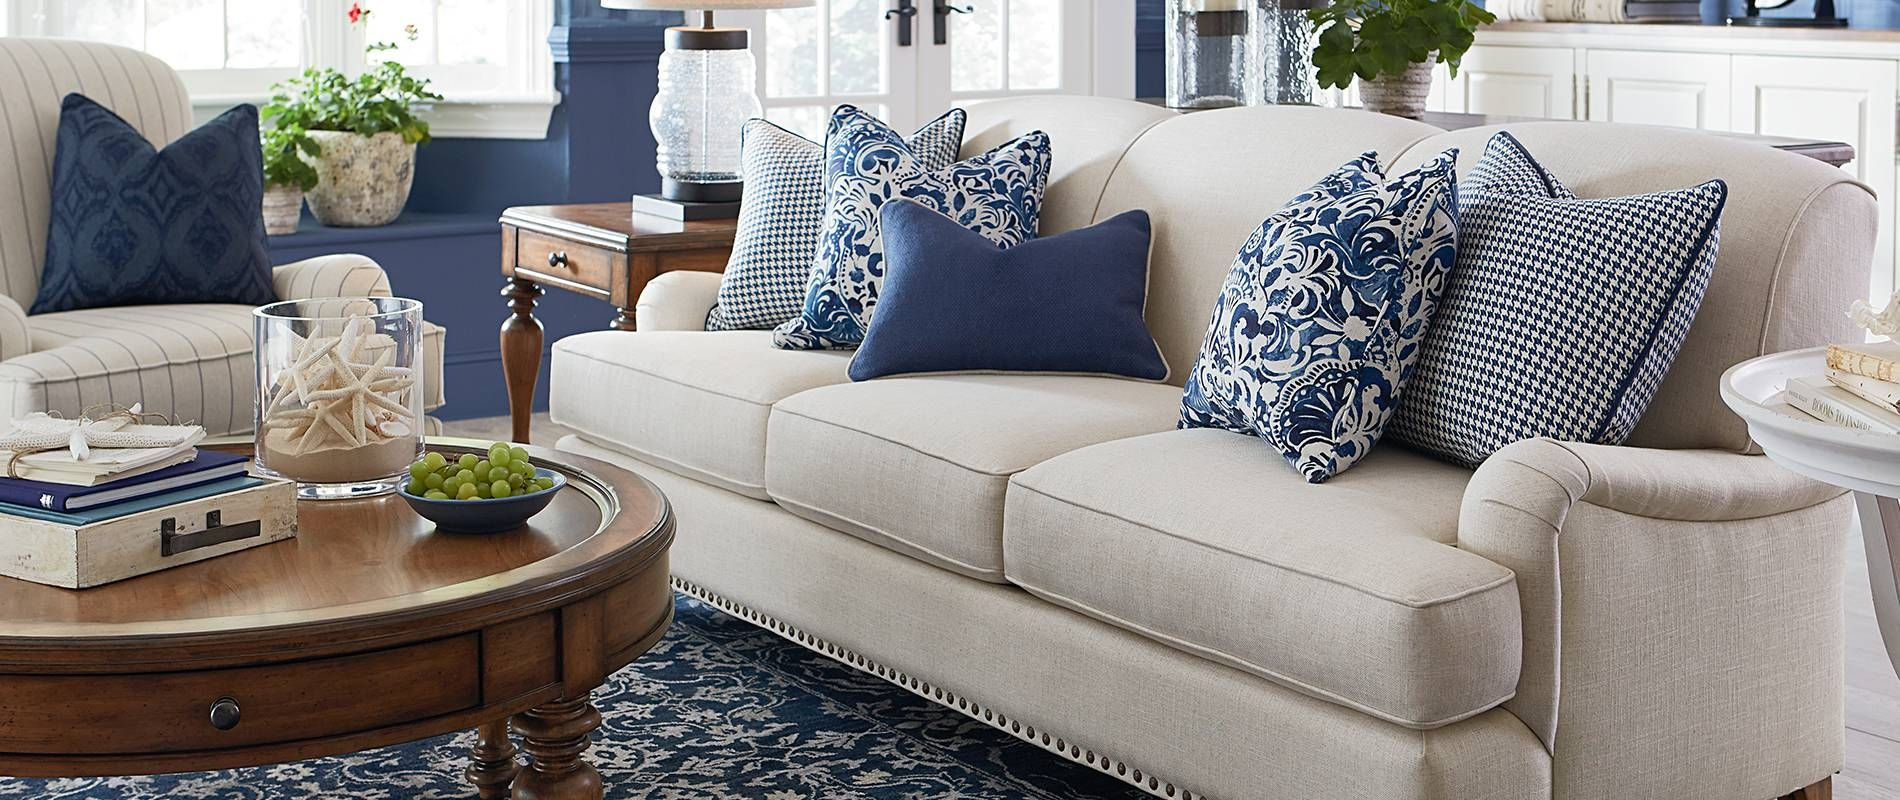 furniture you'll love  blue living room couches living